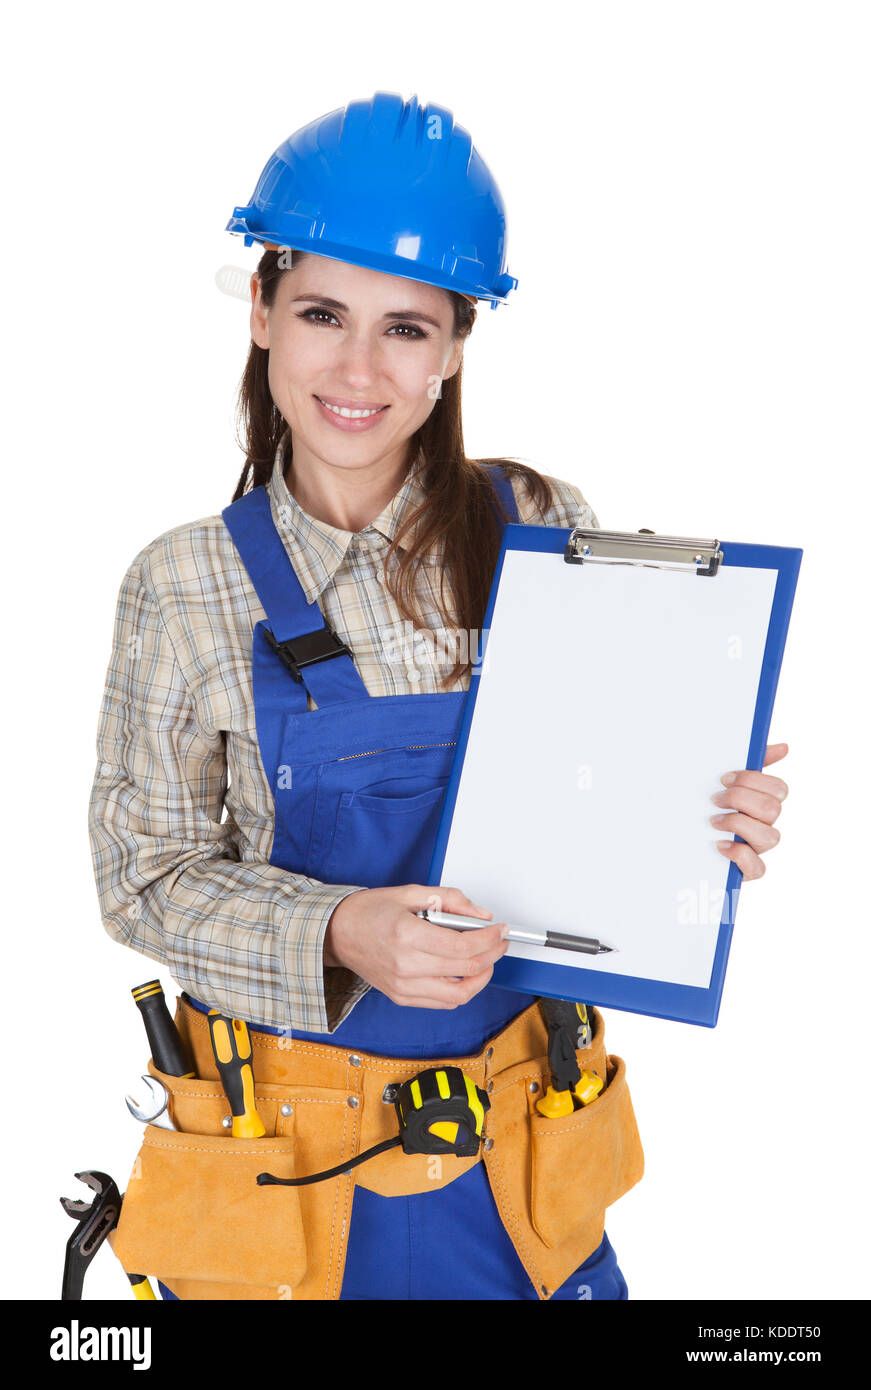 female-worker-showing-blank-clipboard-on-white-background-KDDT50.jpg